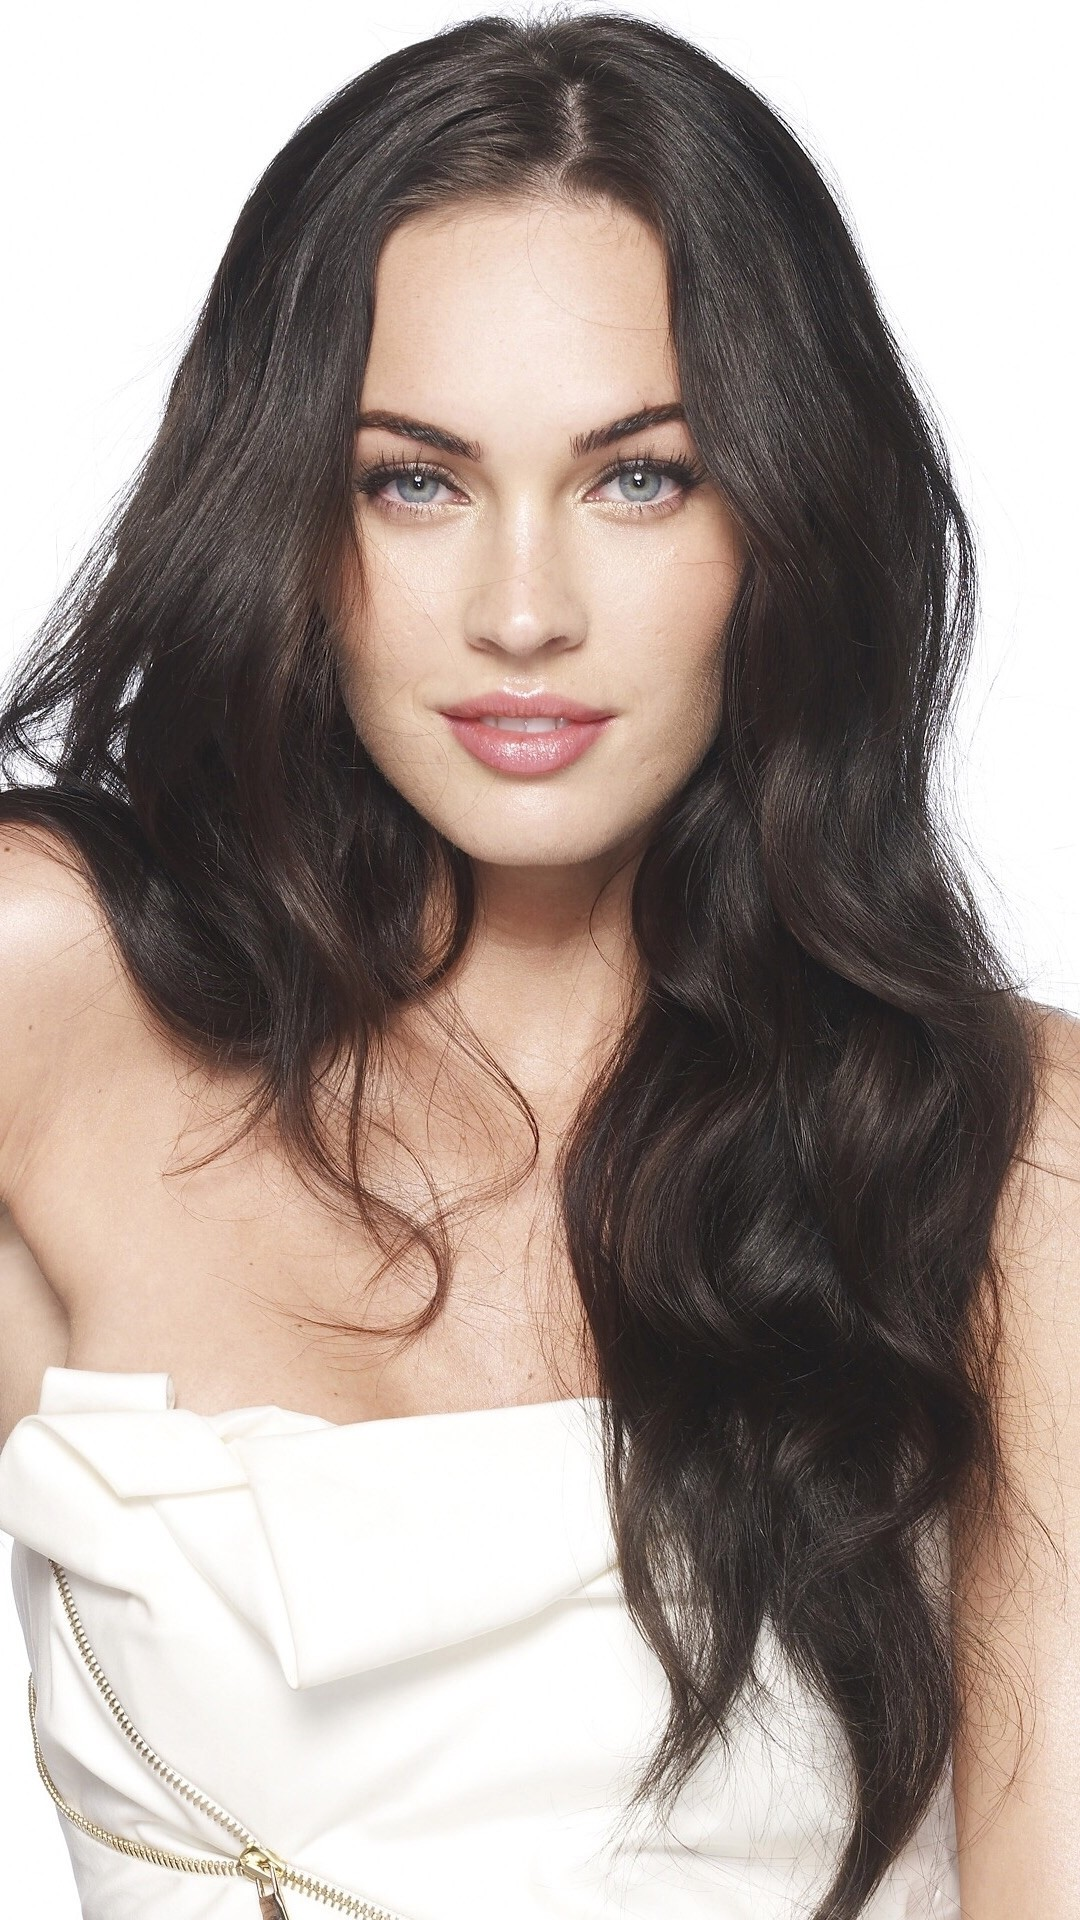 Megan Fox Wallpaper iPhone 5 ·① WallpaperTag Megan Fox